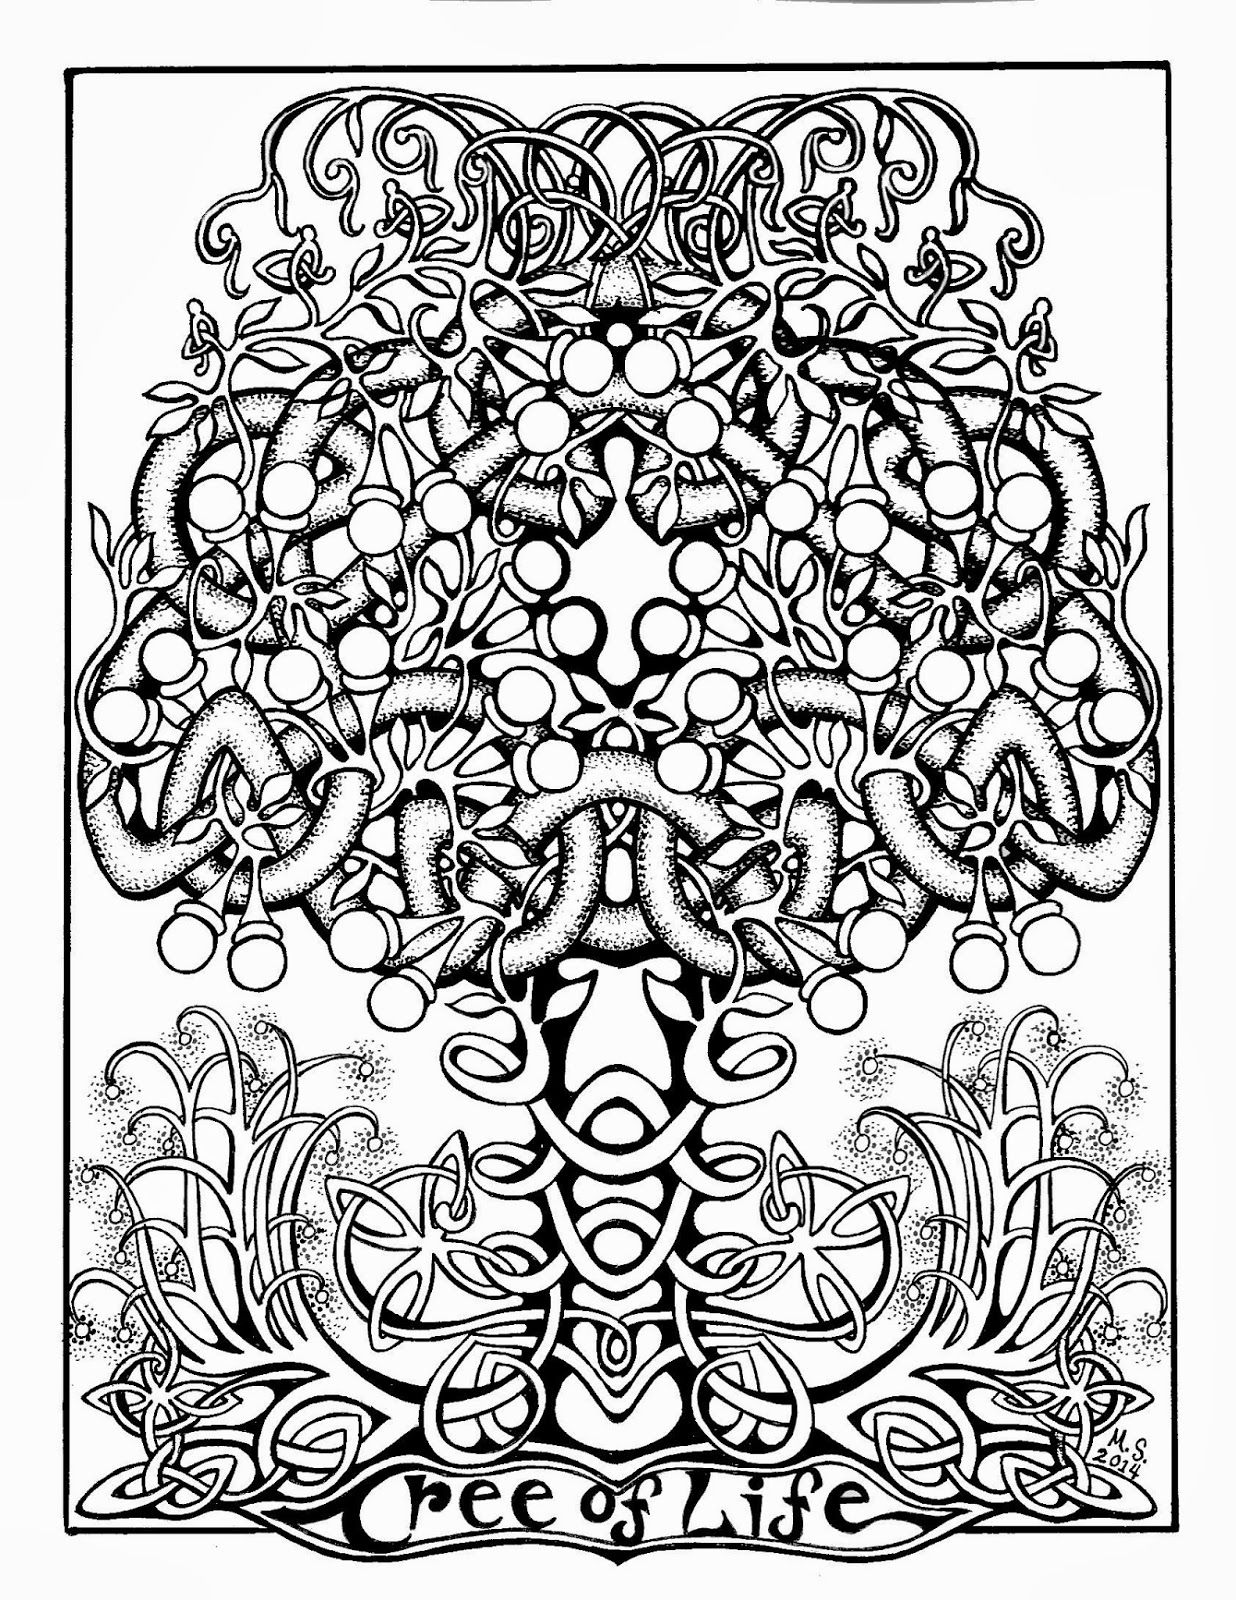 Coloring book pages pinterest - Coloring Page For March 2014